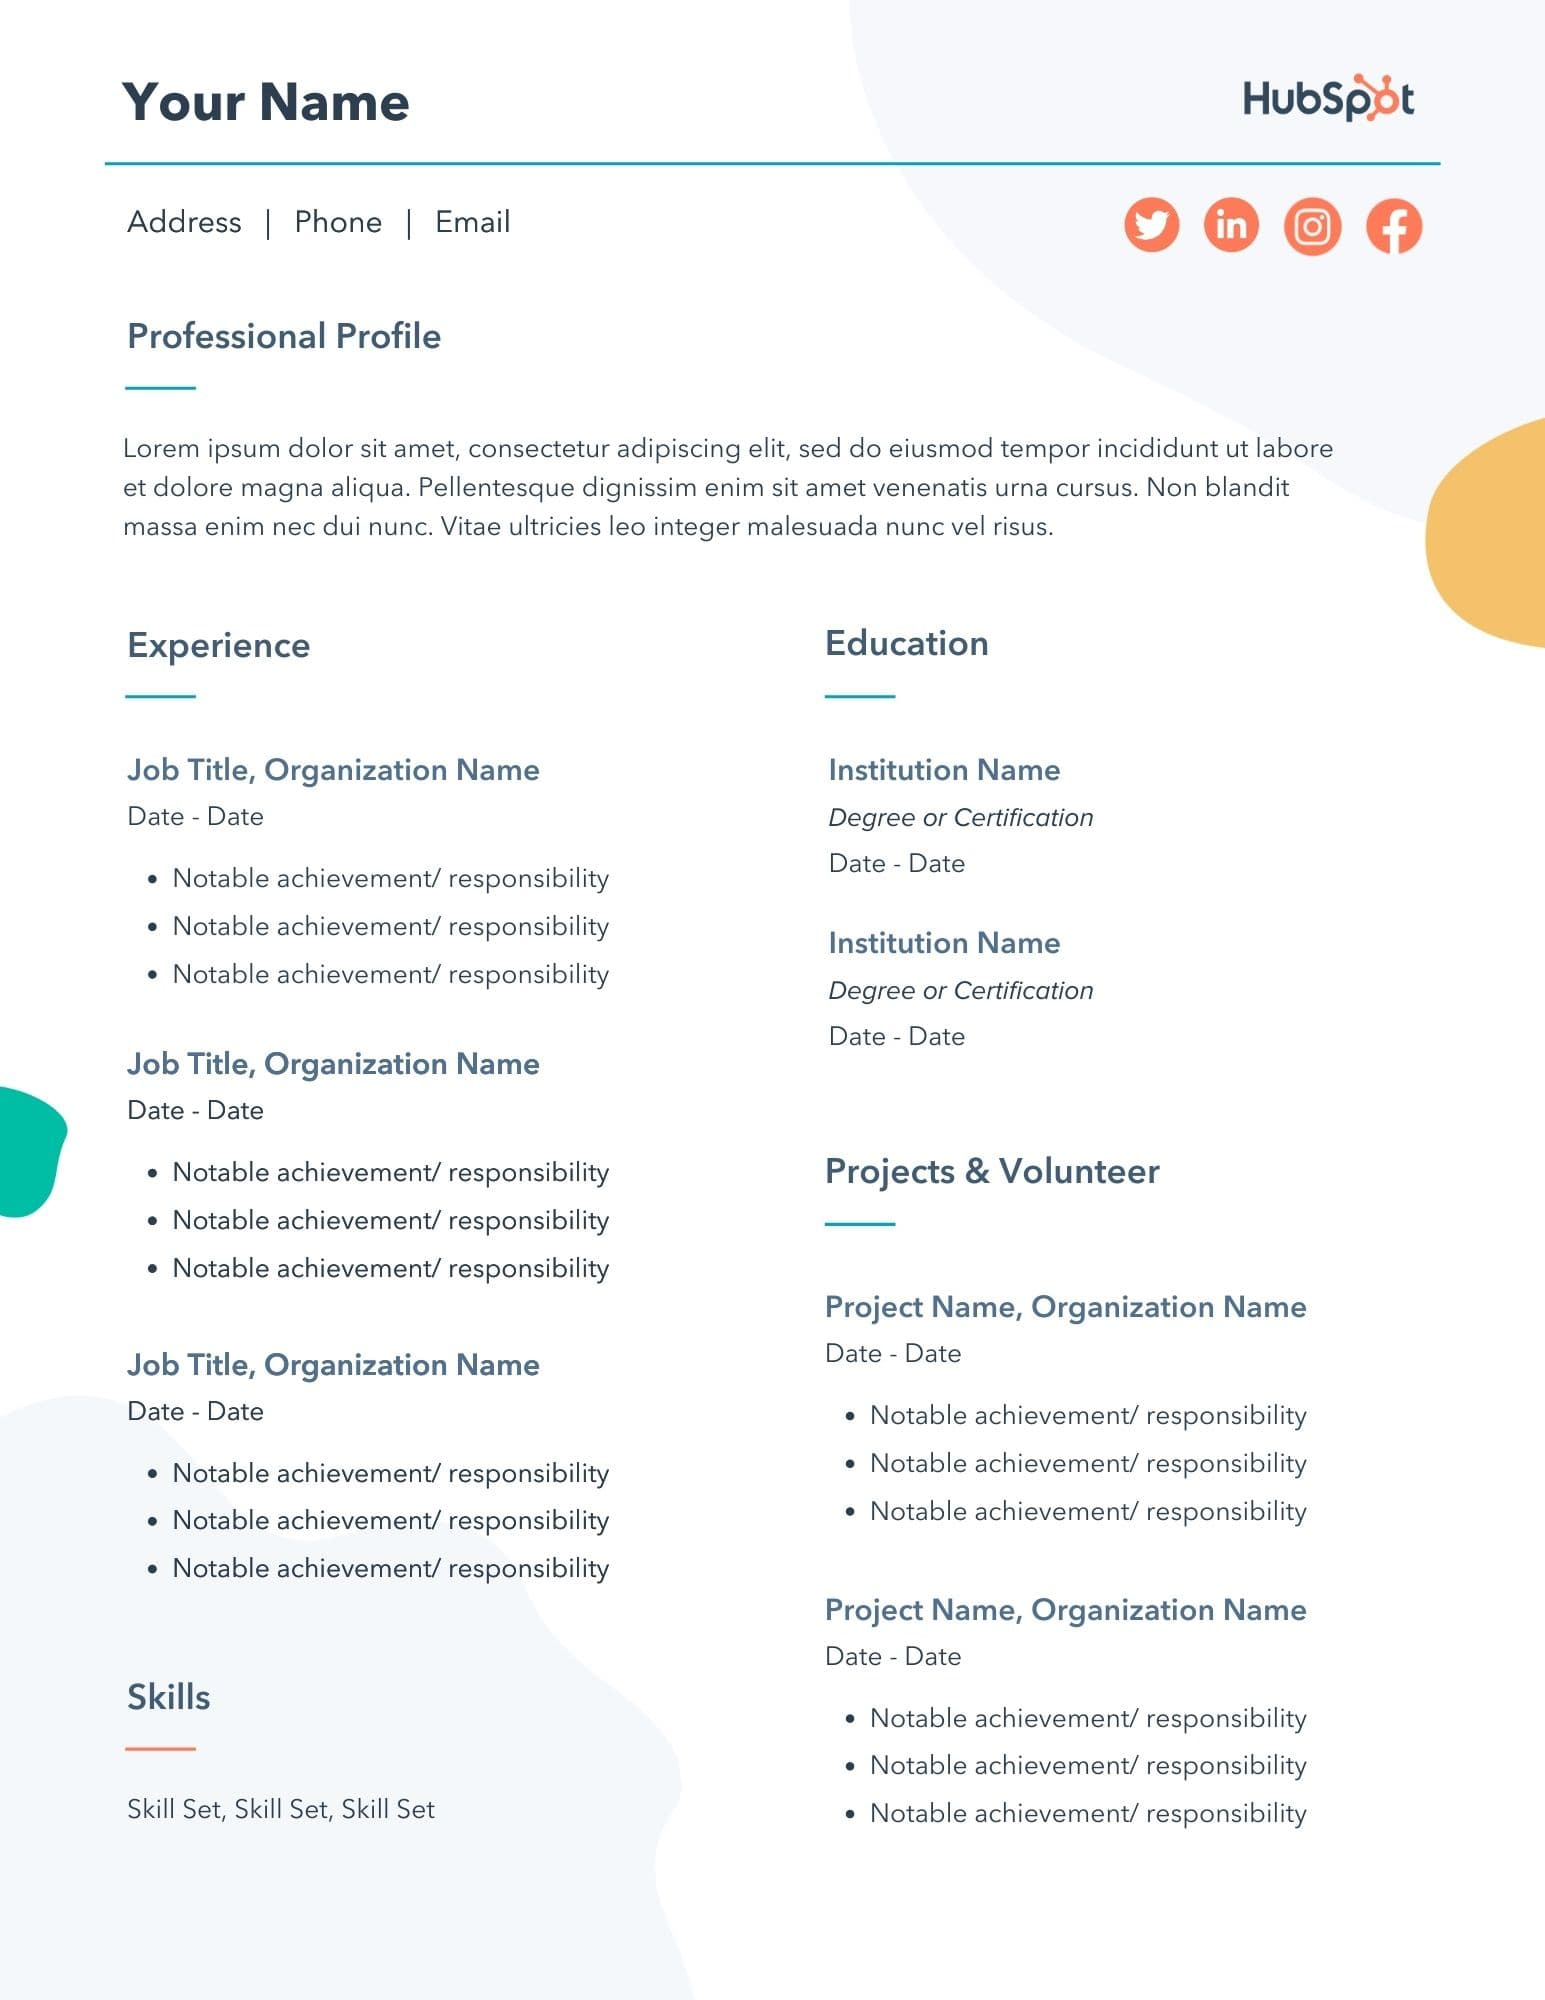 free resume templates for microsoft word to make your own can find template create simple Resume Where Can I Find Free Resume Templates